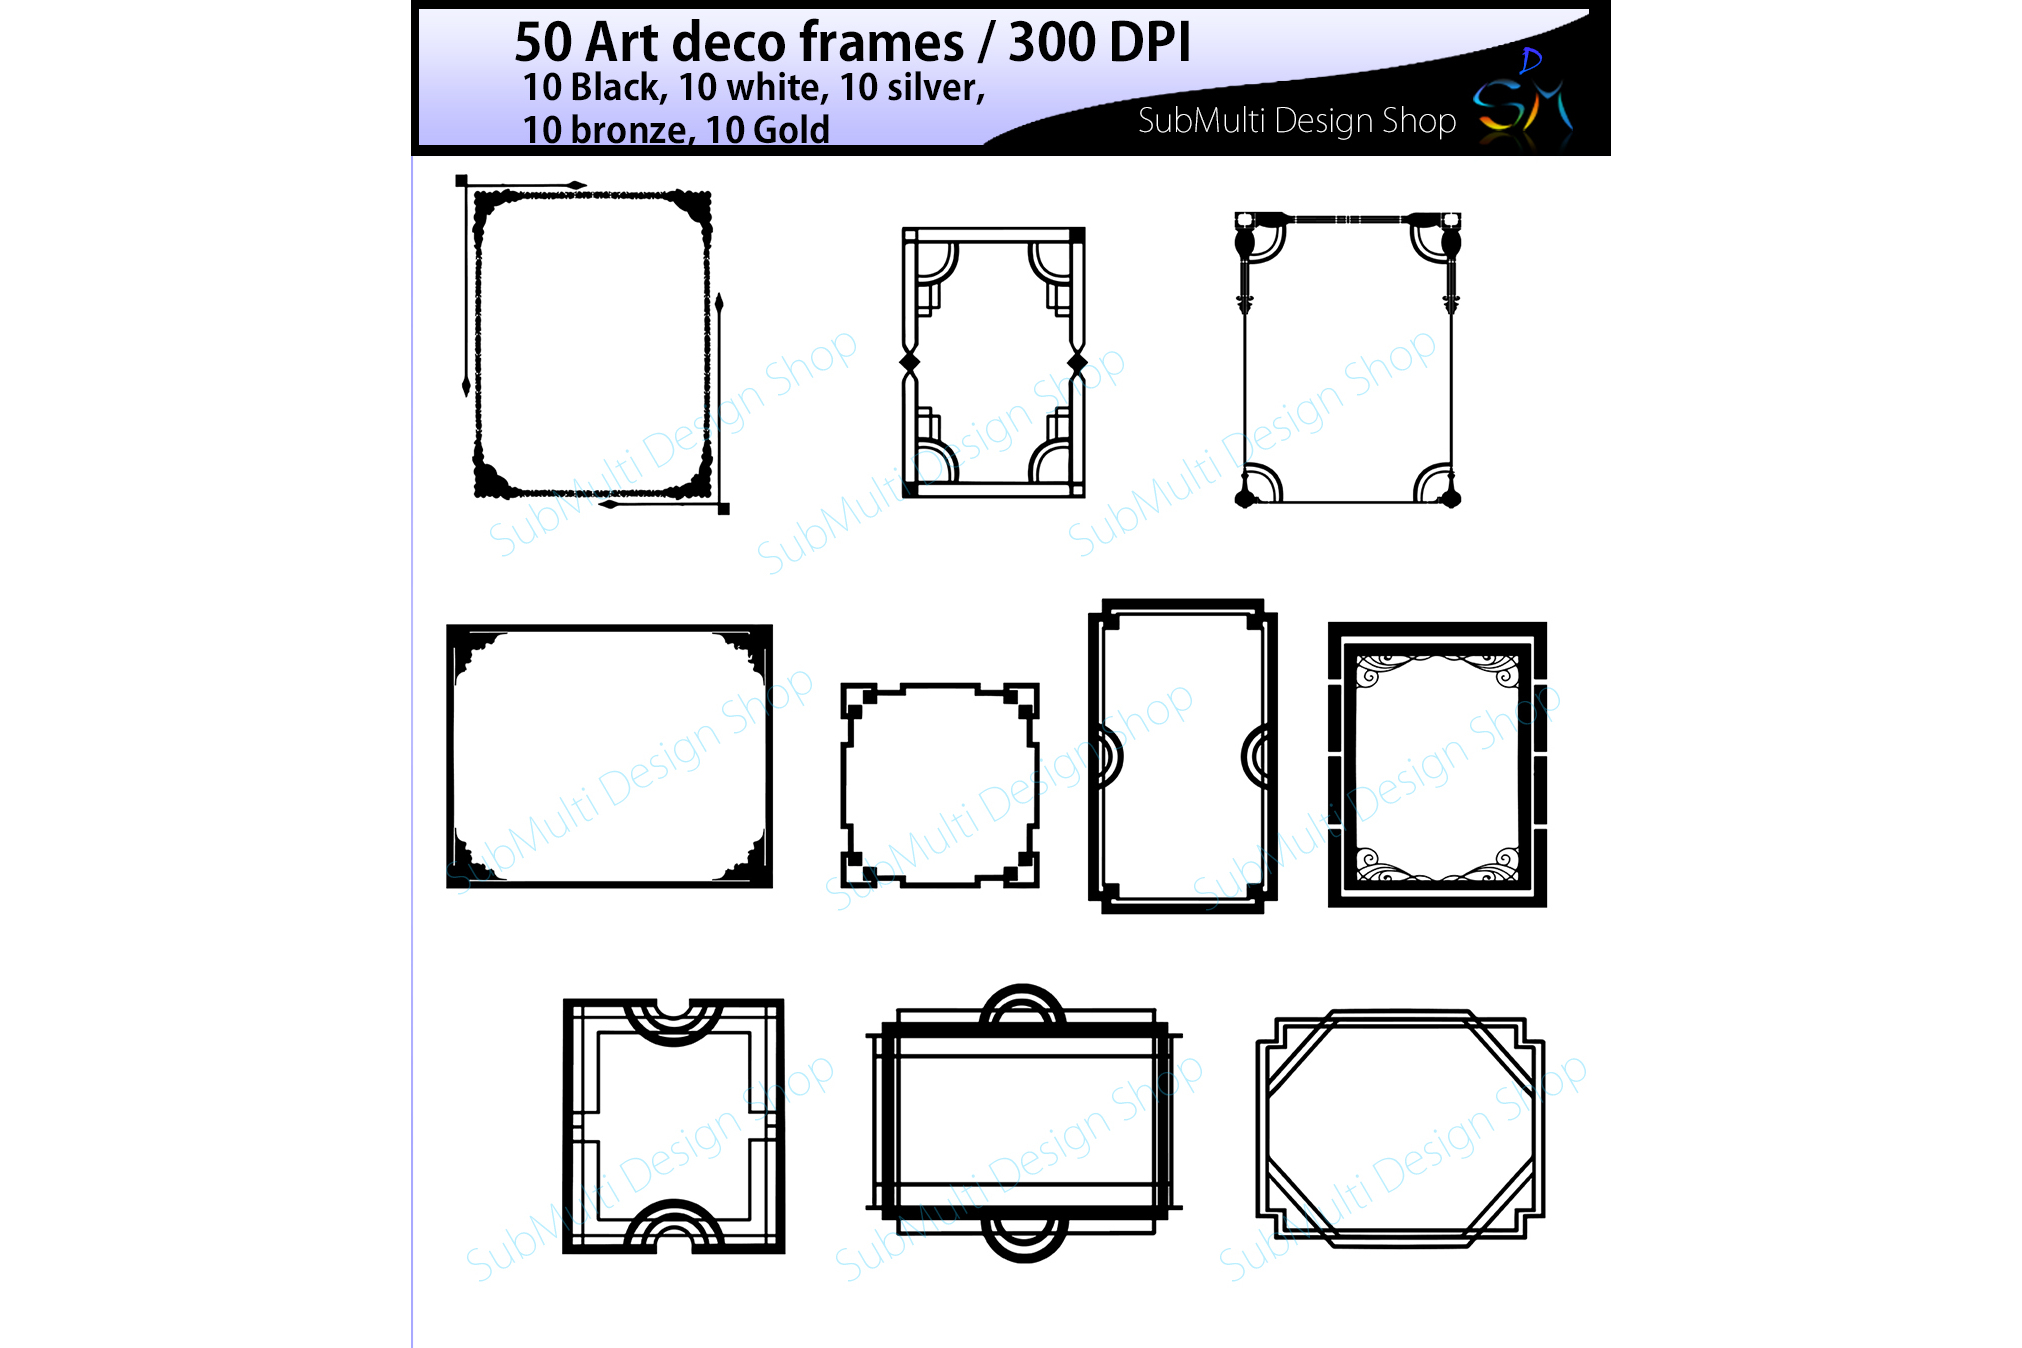 art deco frames / art deco frames clipart / art deco frames silhouette / art deco gold frames / art deco silver frame / digital/High Quality example image 1